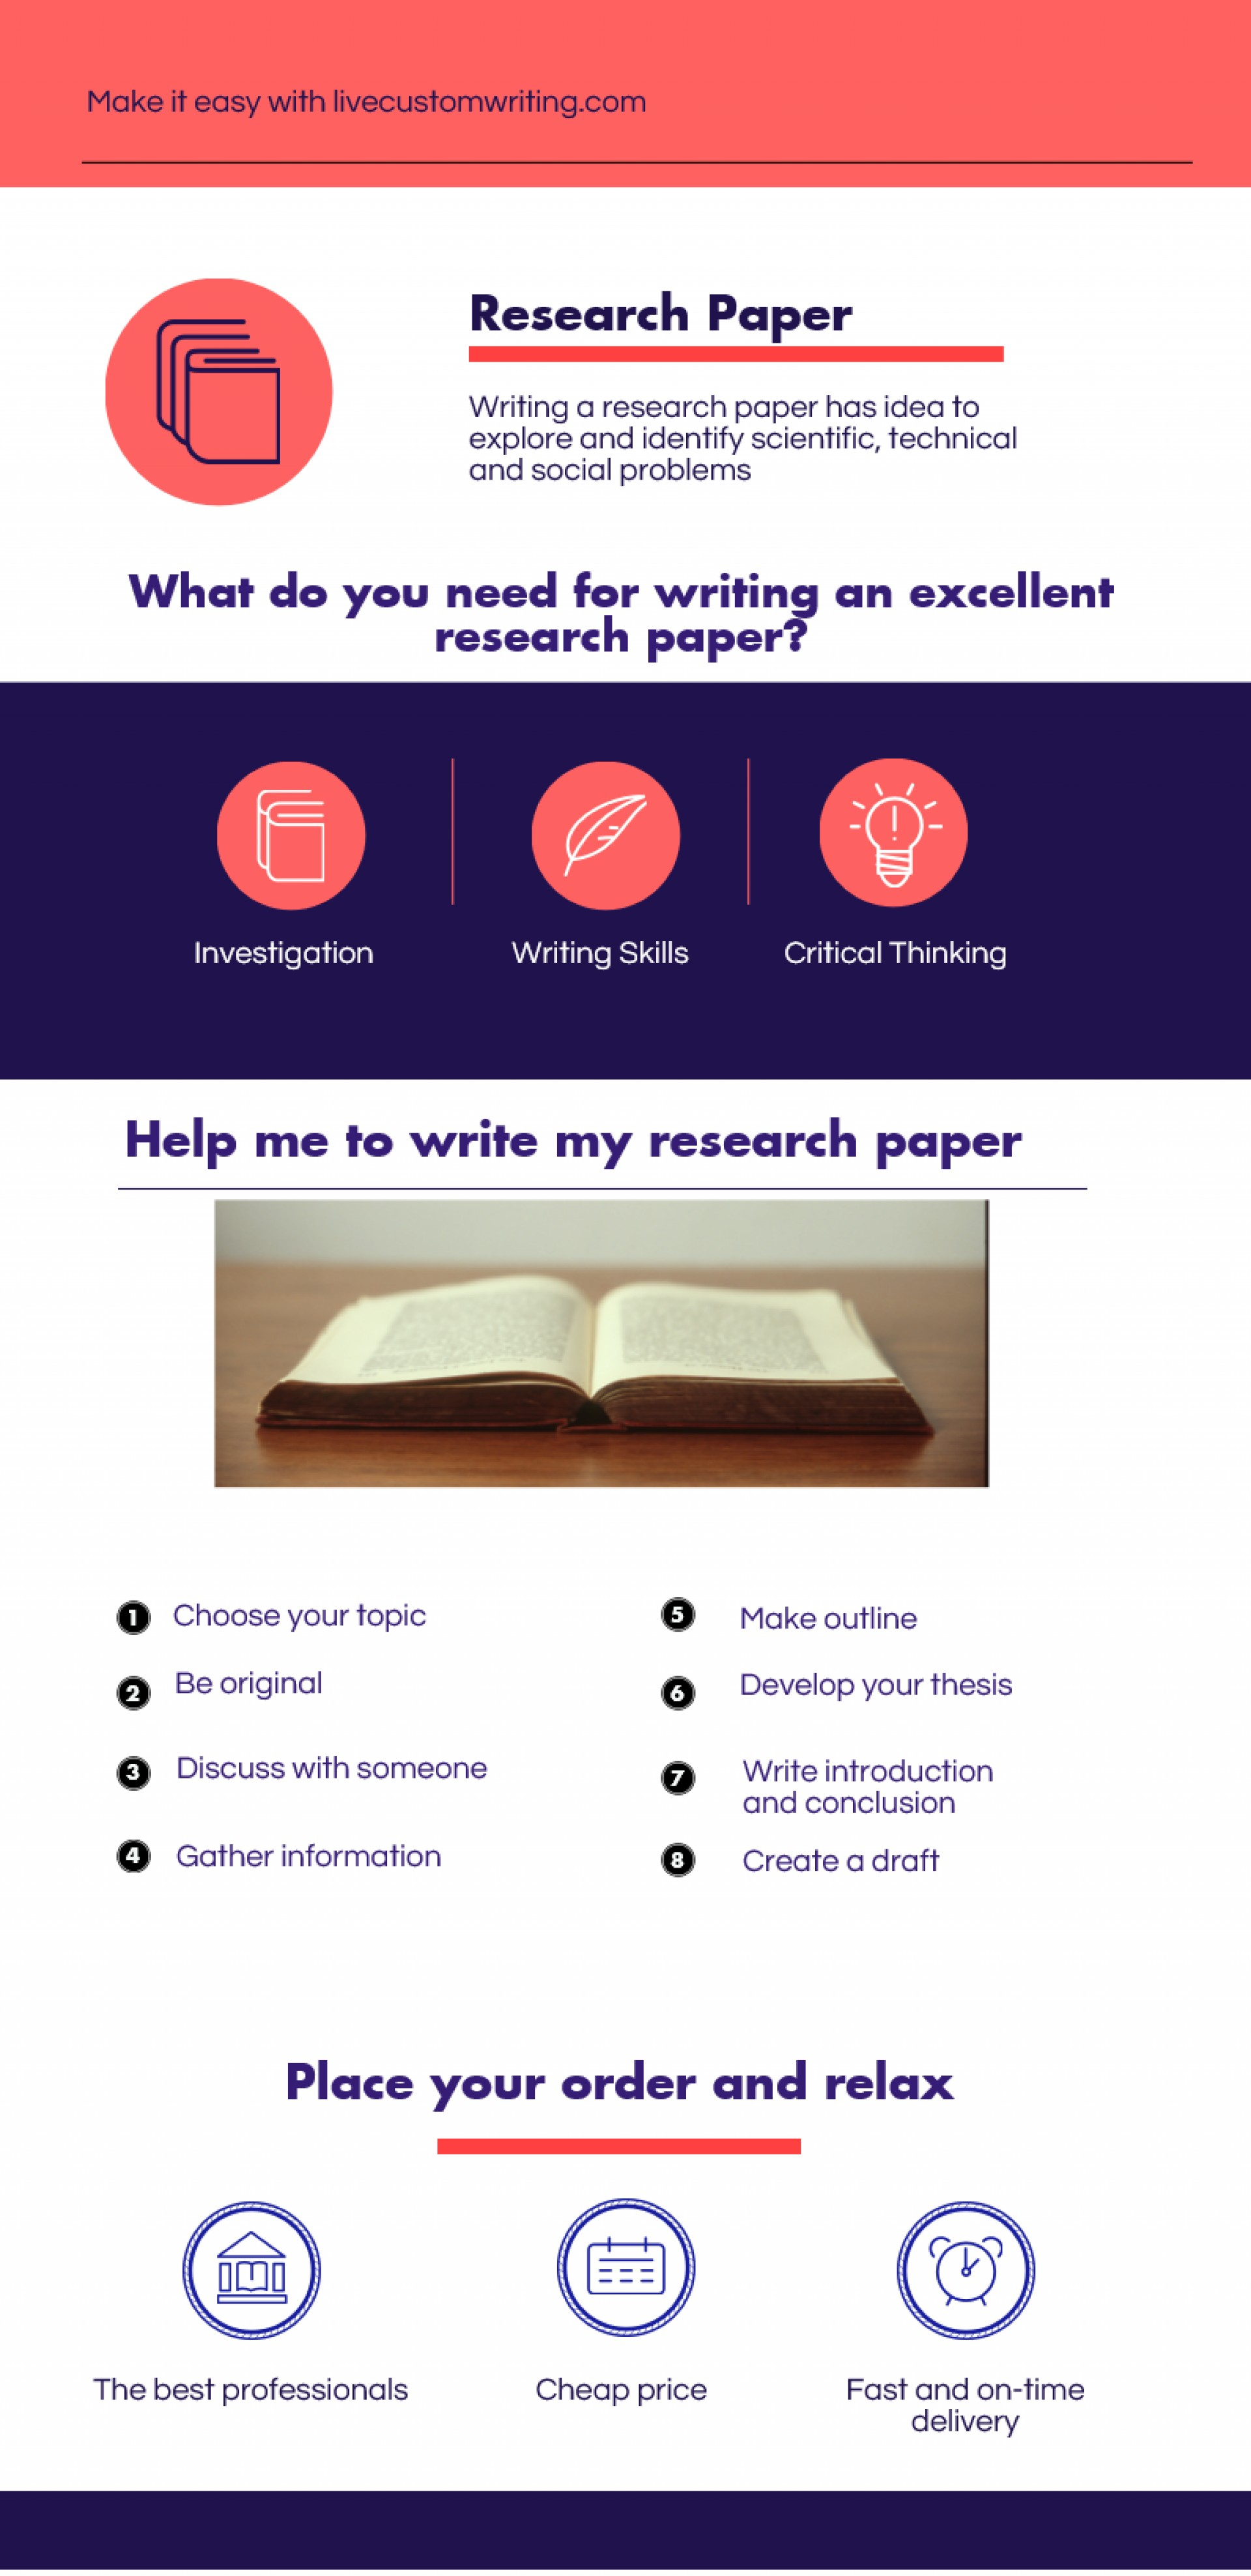 016 Untitled Infographic28229 Write My Research Formidable Paper For Me Cheap Someone 1920